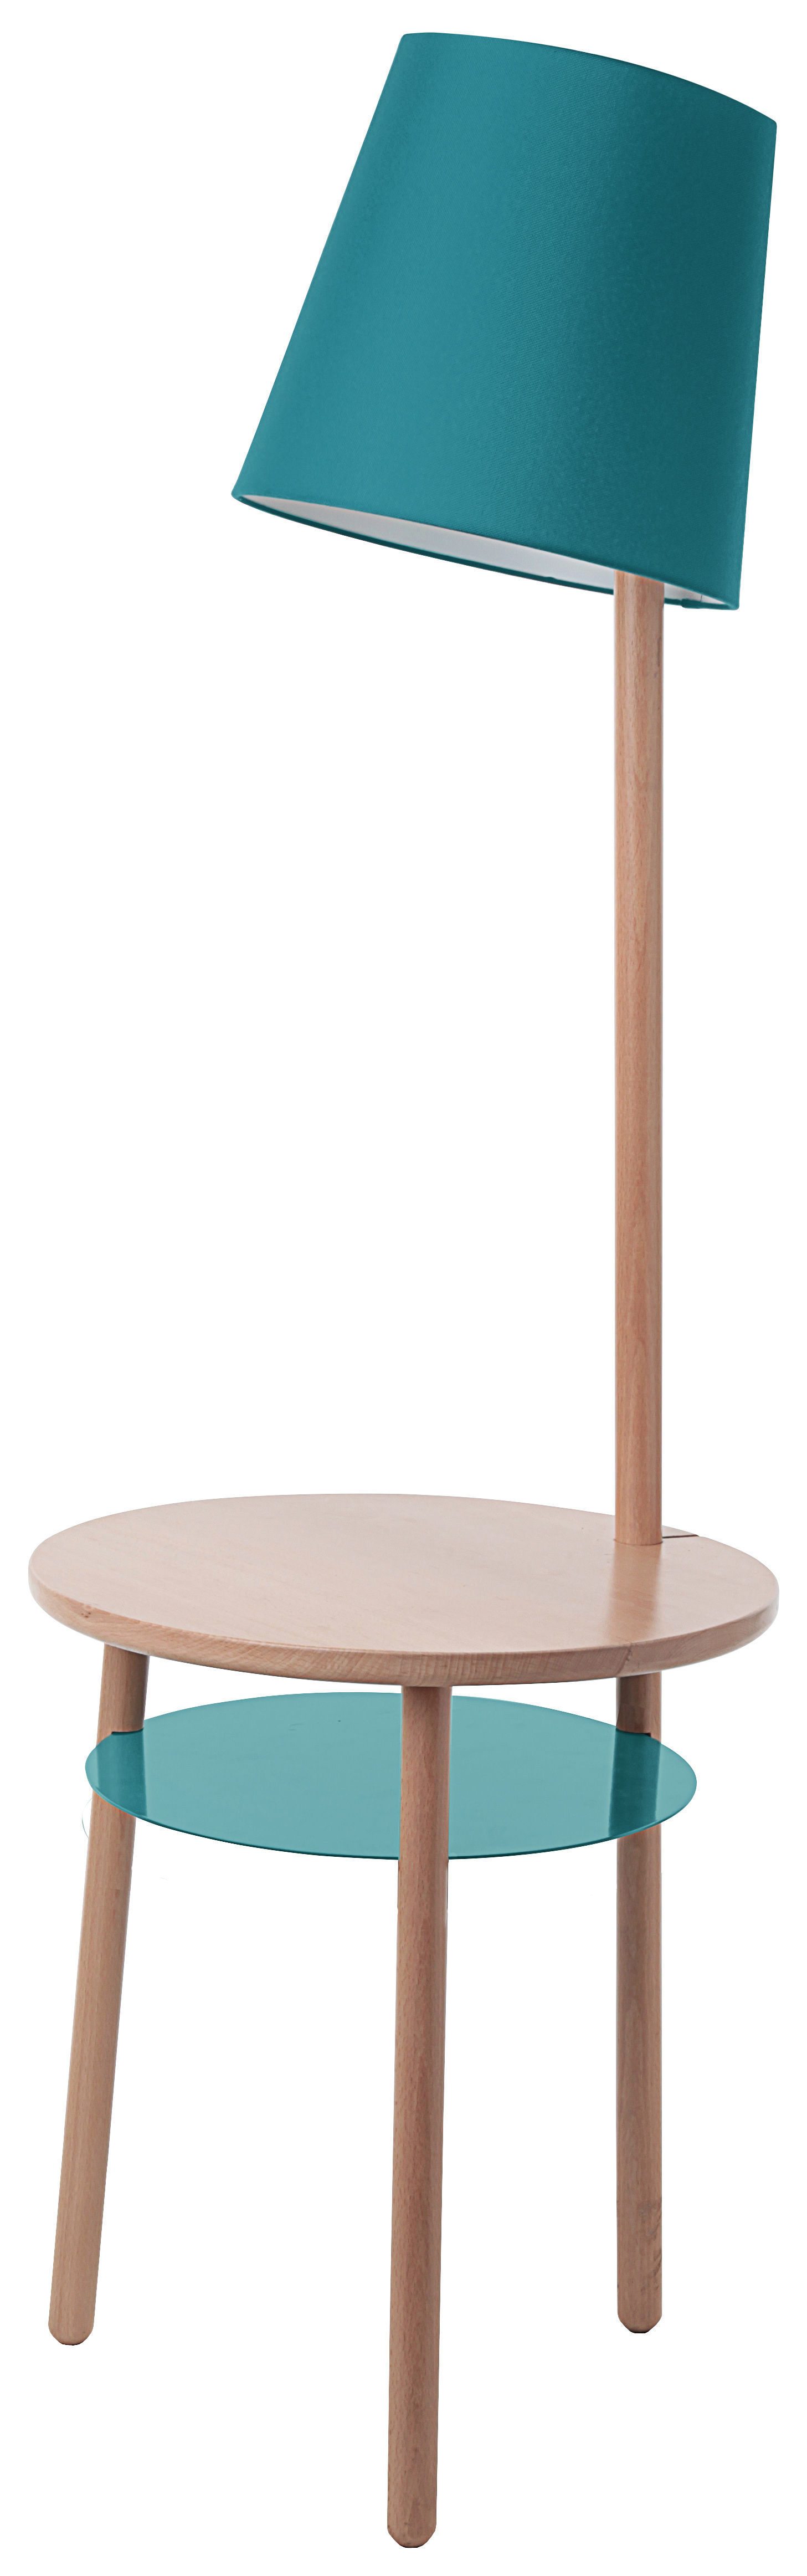 Furniture - Coffee Tables - Josette Floor lamp by Hartô - Aqua blue - Cotton, Lacquered metal, Natural beechwood